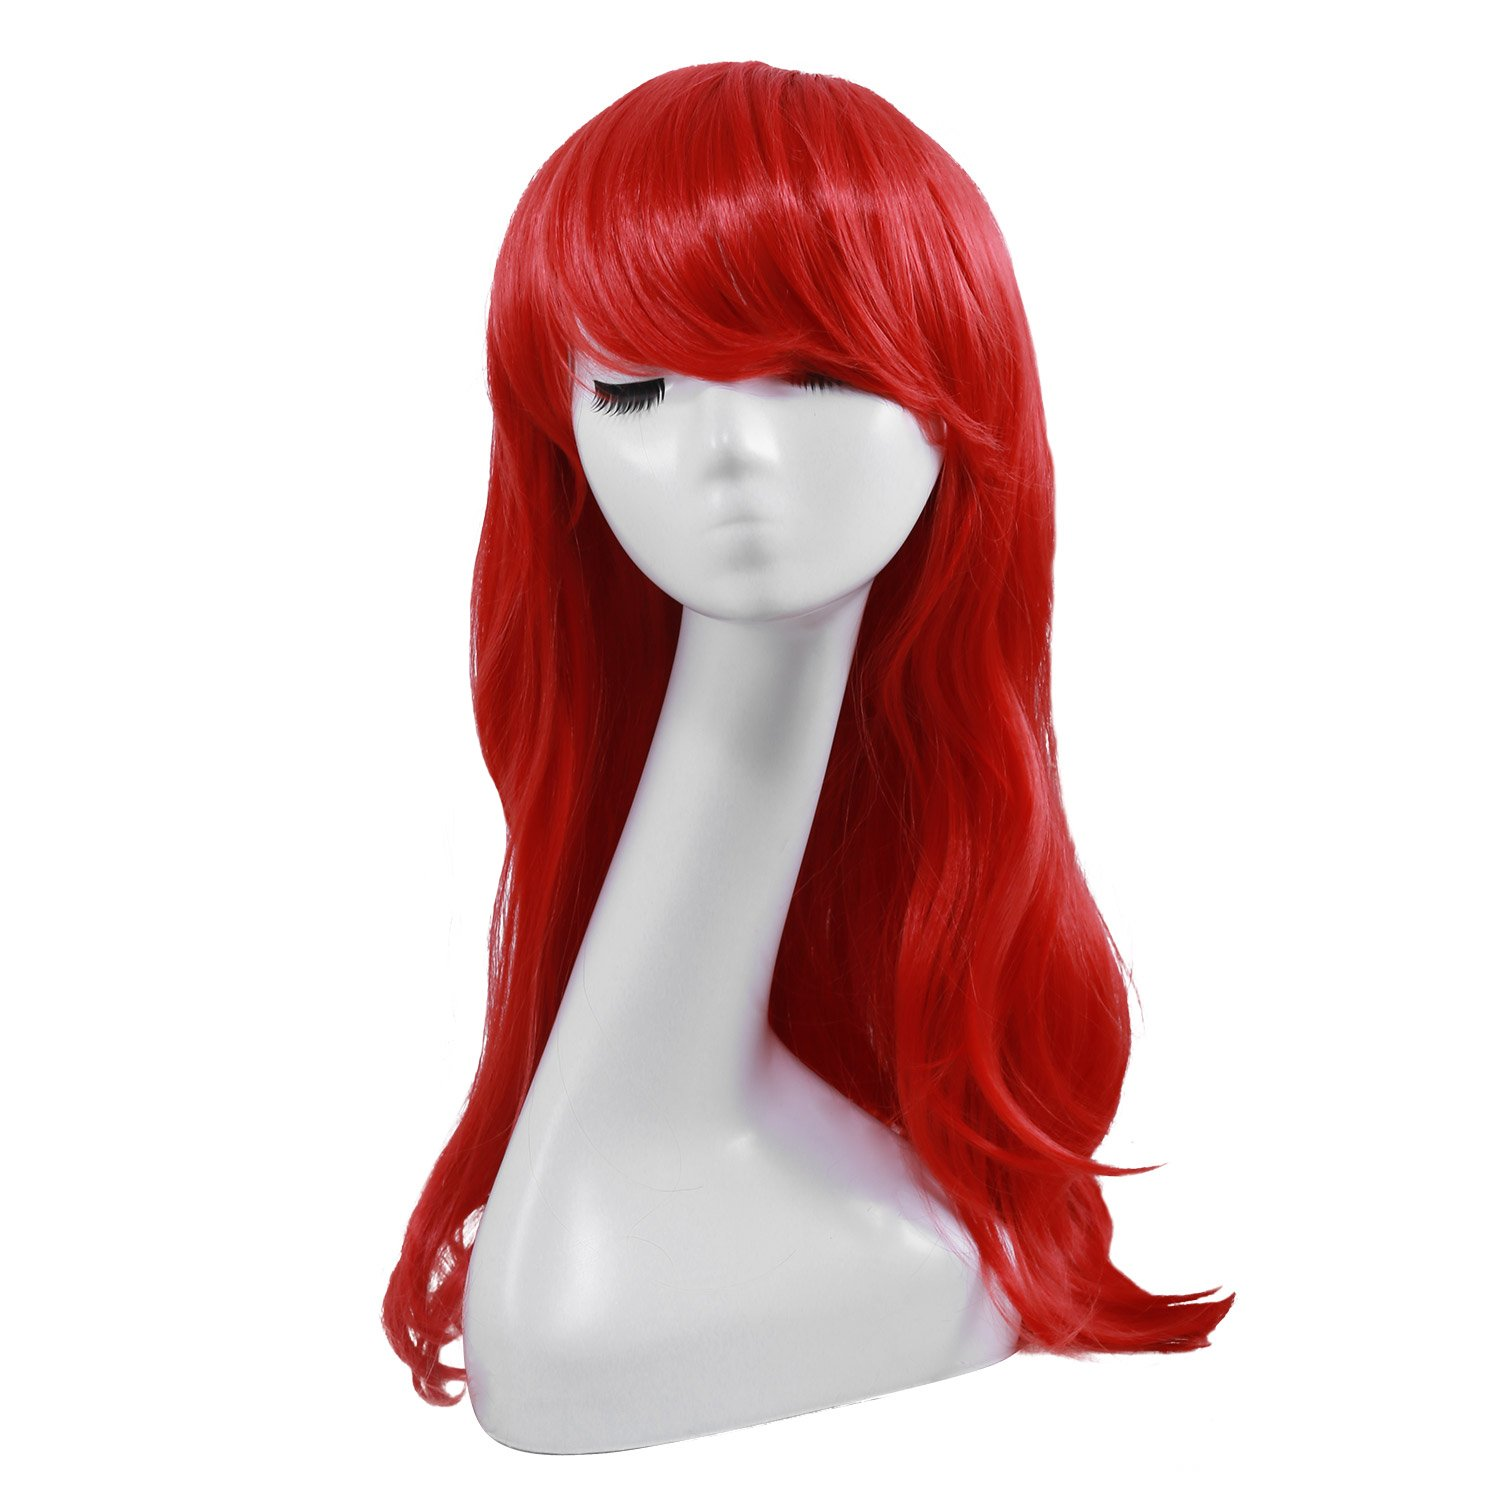 Wavy Anime Cosplay Wig Niulun Red Curly Wig With Inclined Bangs Synthetic Cosplay Daily Party Wig for Women Natural Looking